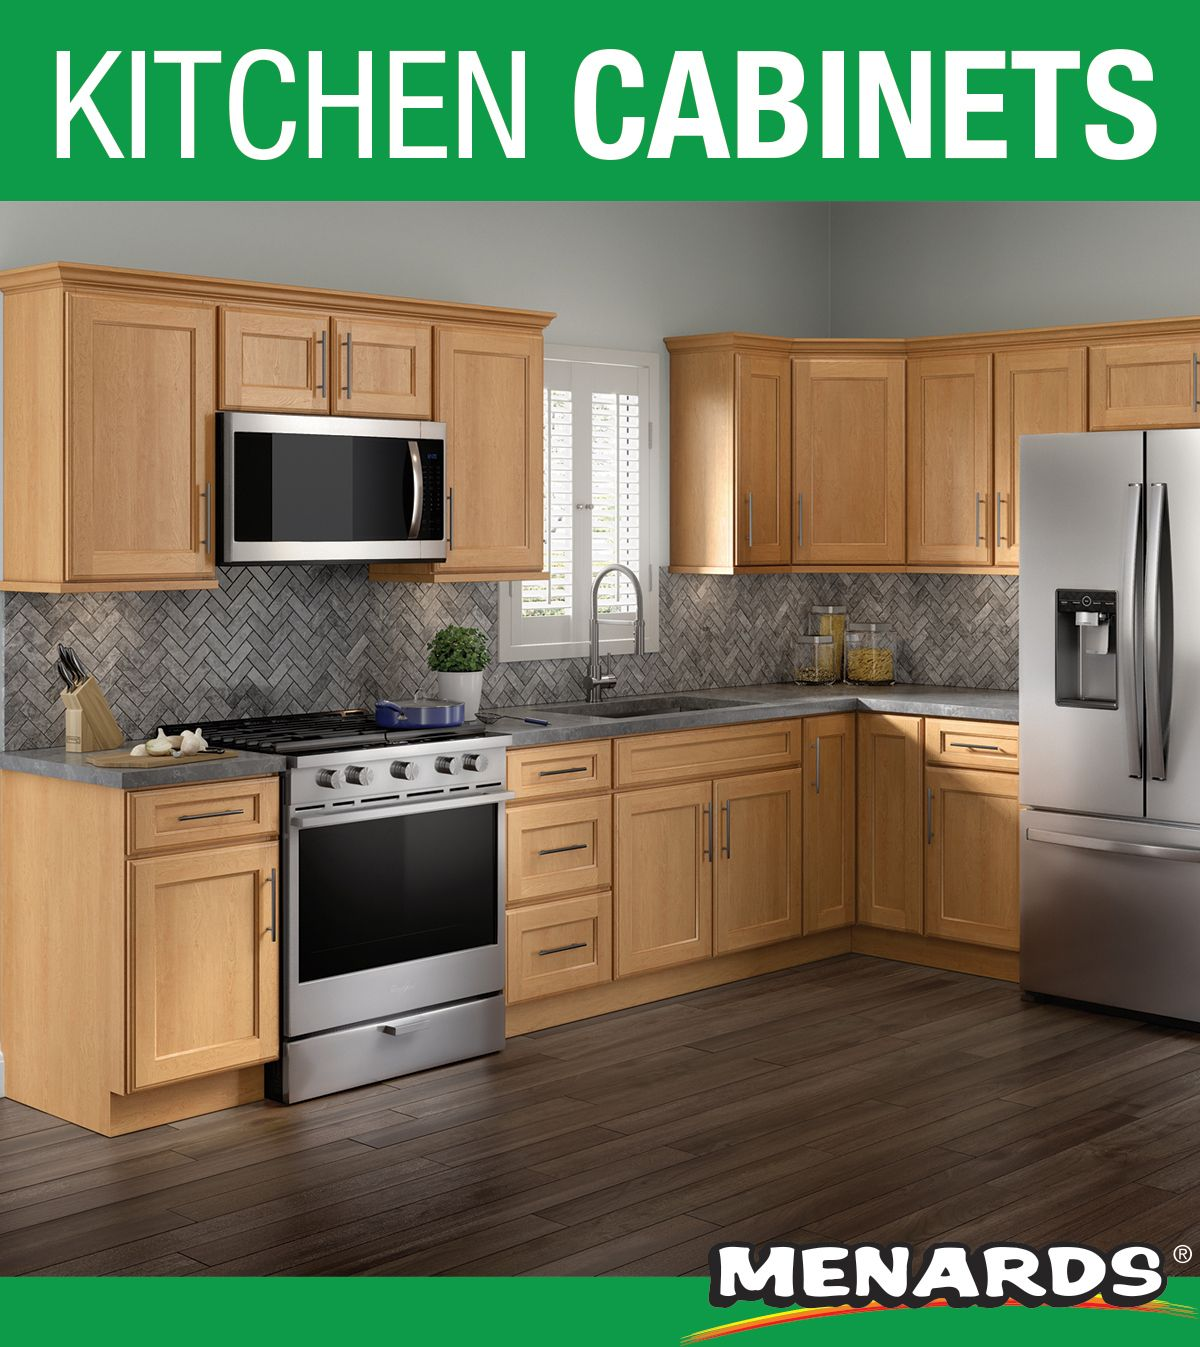 Cardell Cornerstone Collection Lakeridge Honey Spice 19 L Kitchen Cabinets Only In 2020 Kitchen Cabinets Menards Cabinets Unfinished Kitchen Cabinets